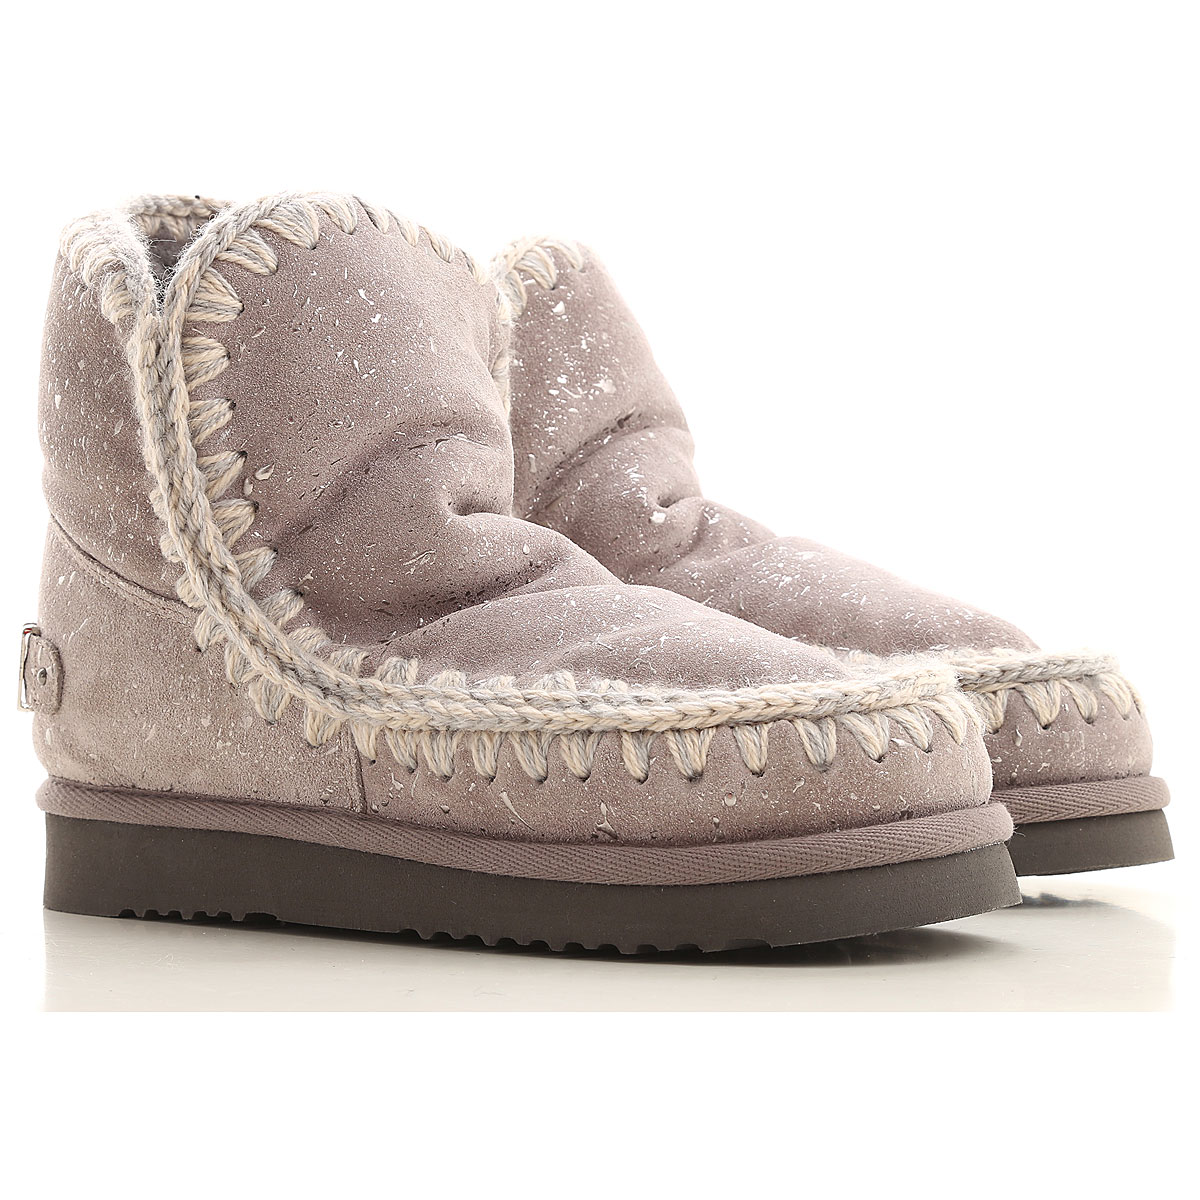 Mou Boots for Women, Booties On Sale in Outlet, Smoke, Cow Skin, 2019, EUR 37 - UK 4 - USA 6.5 EUR 40 - UK 7 - USA 9.5